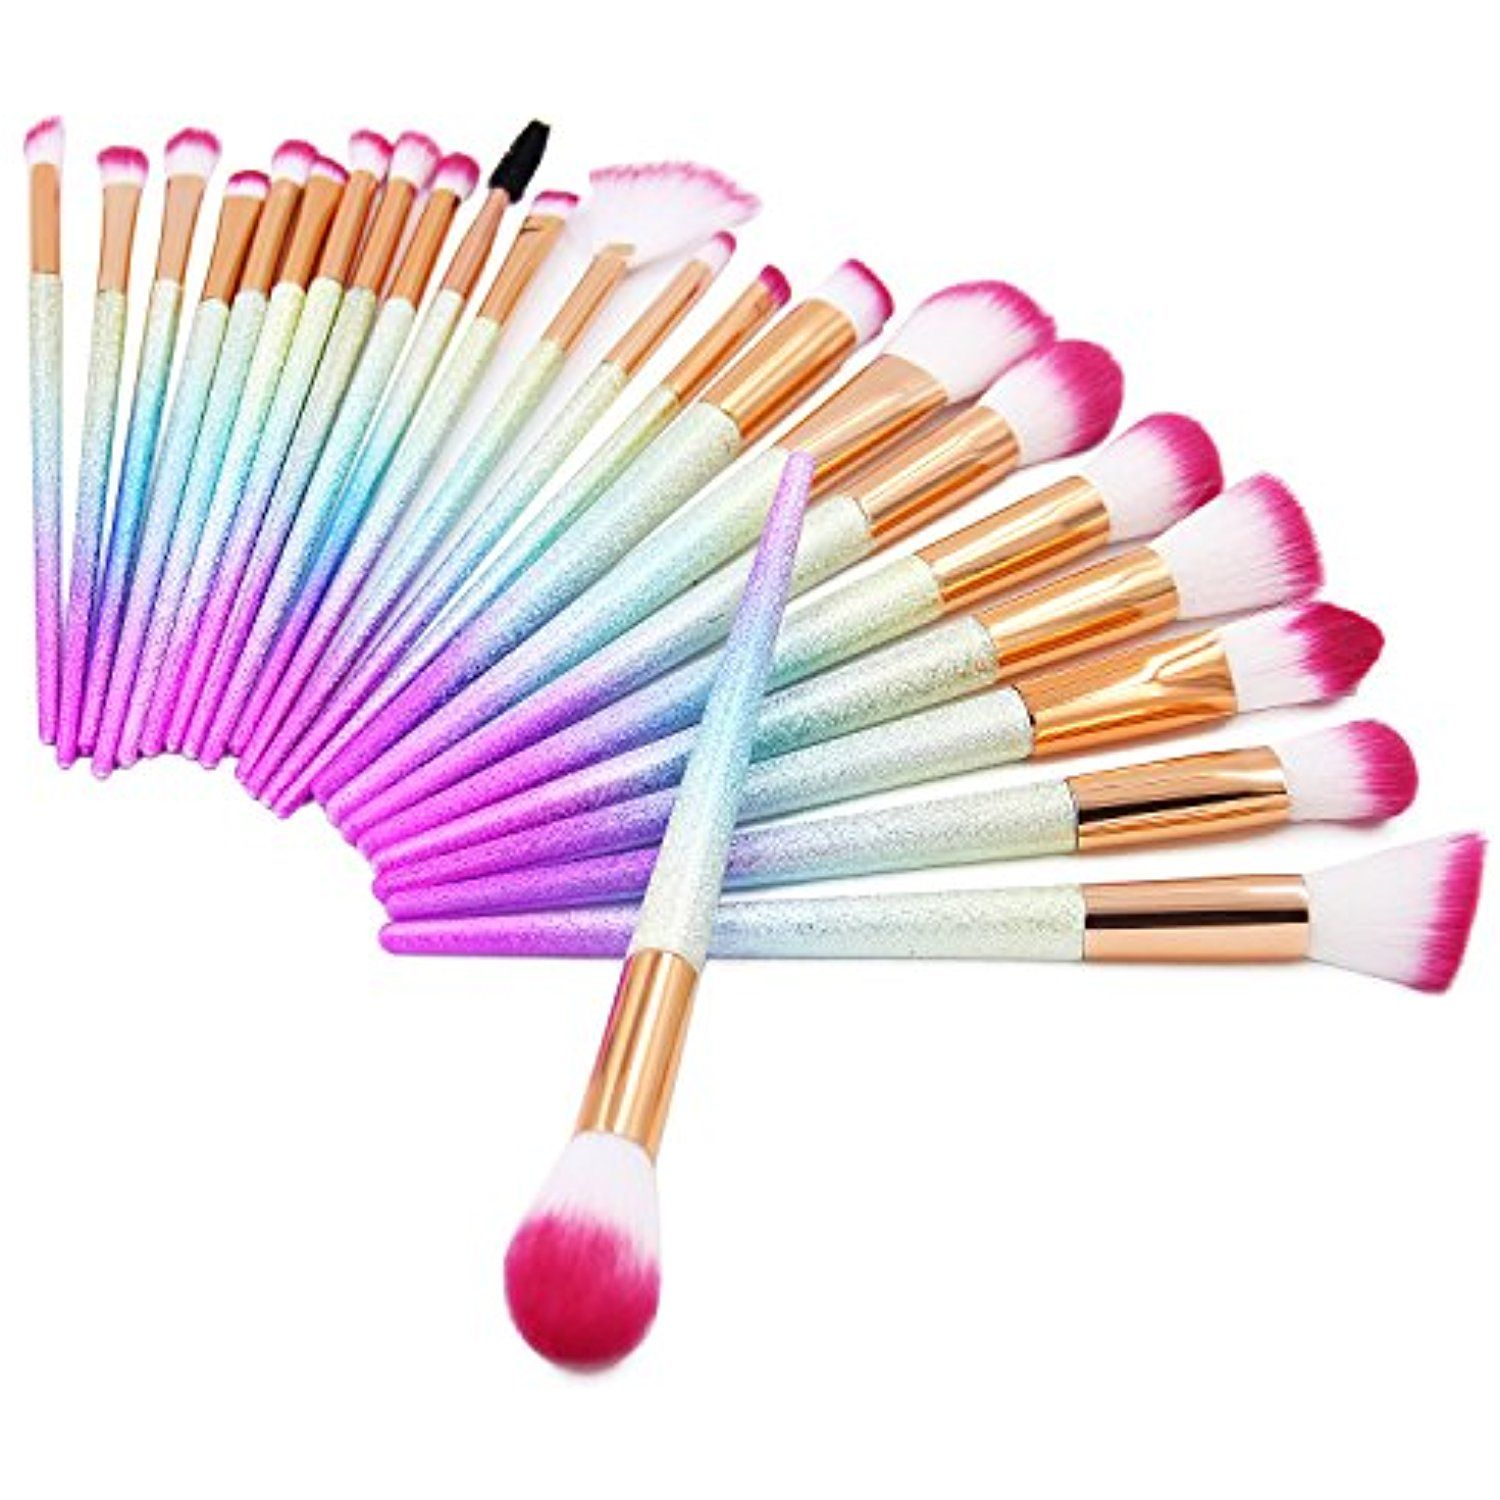 QERI Make Up Brushes 24 Pieces Professional Makeup Brush